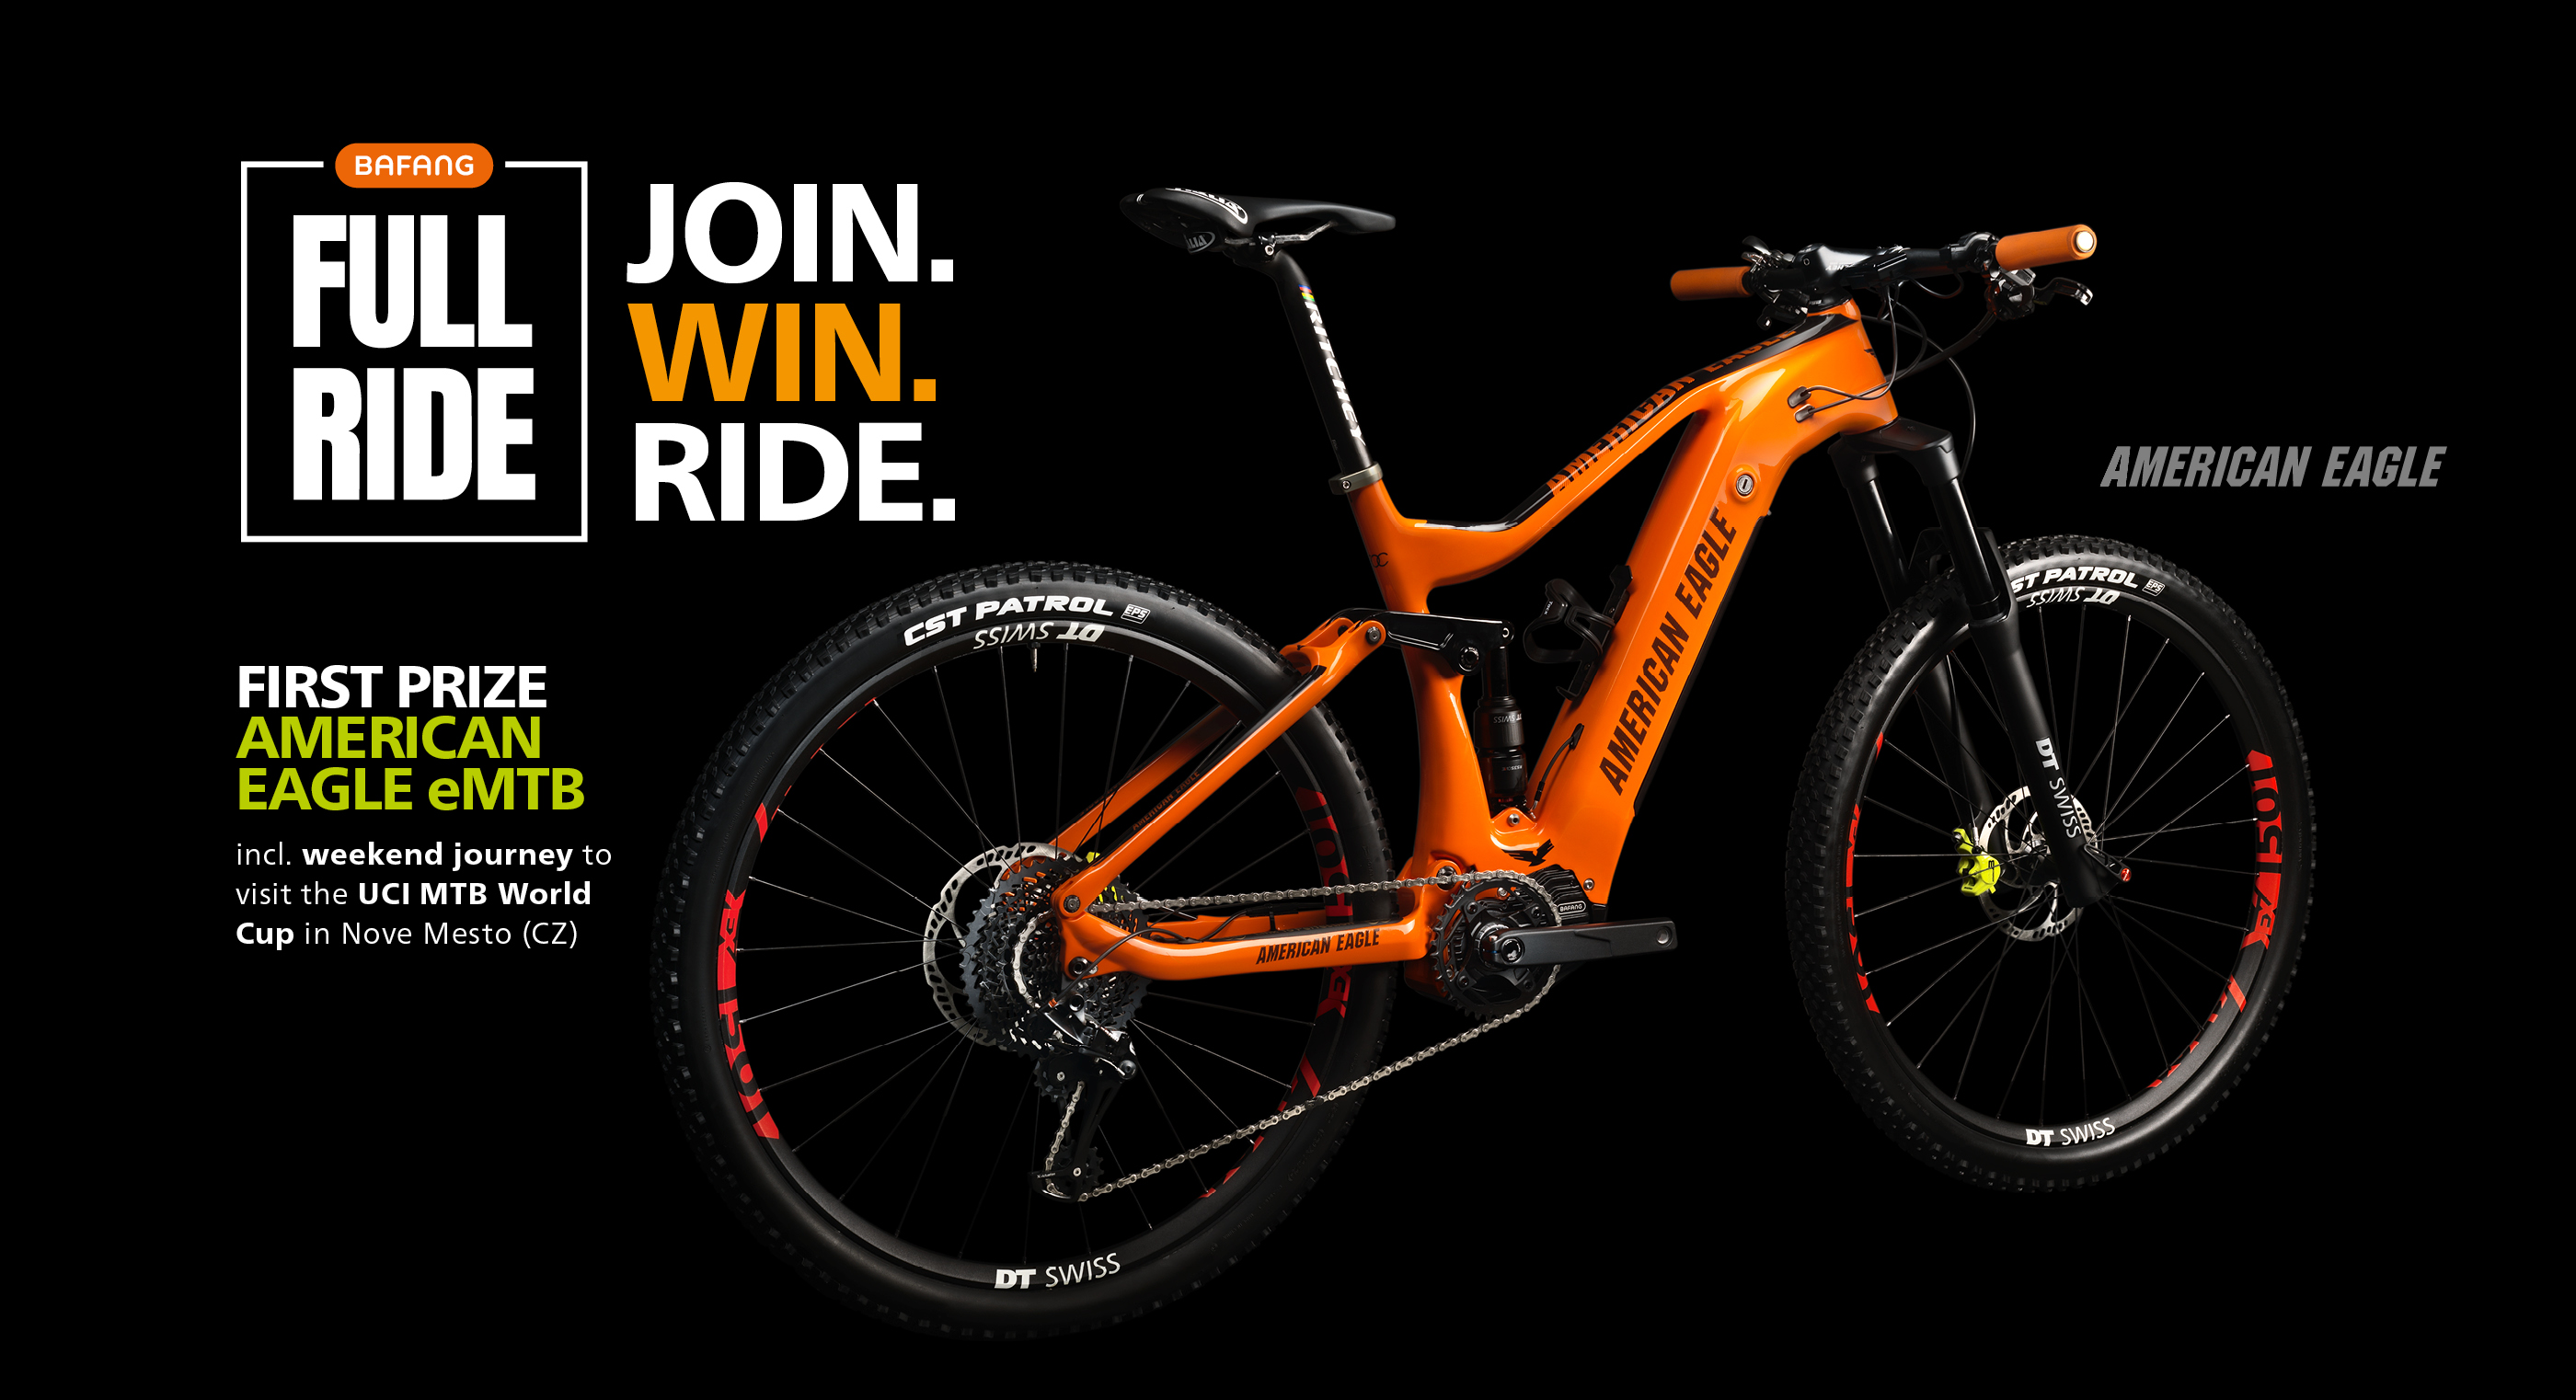 Enter for your chance to win an American Eagle eMTB bike powered by BAFANG and a trip to the UCI MTB World Cup in Czech Republic! Total prize package worth around $2,500